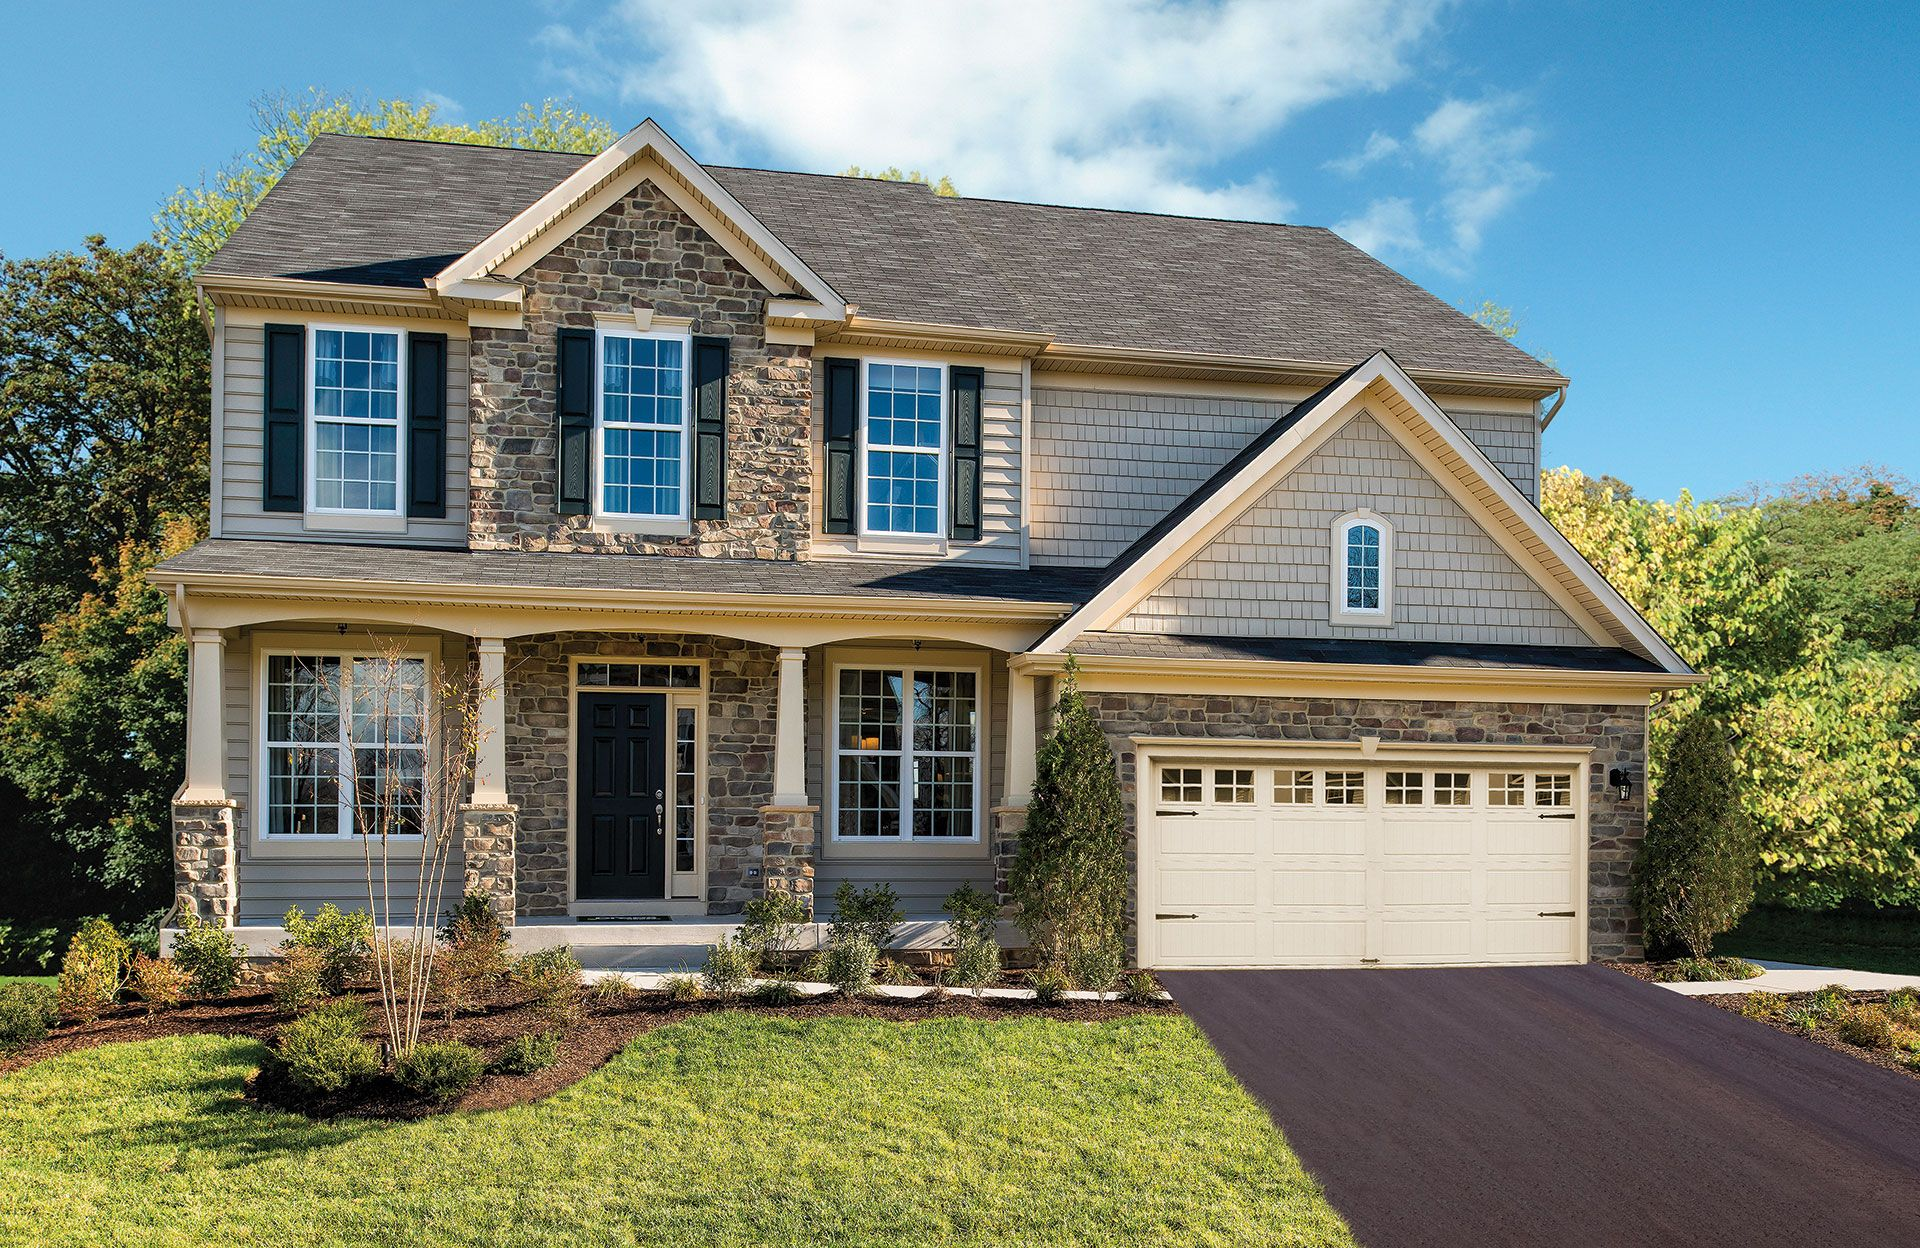 '' building or community at '17 Cutstone Drive Stafford, Virginia 22554 United States'